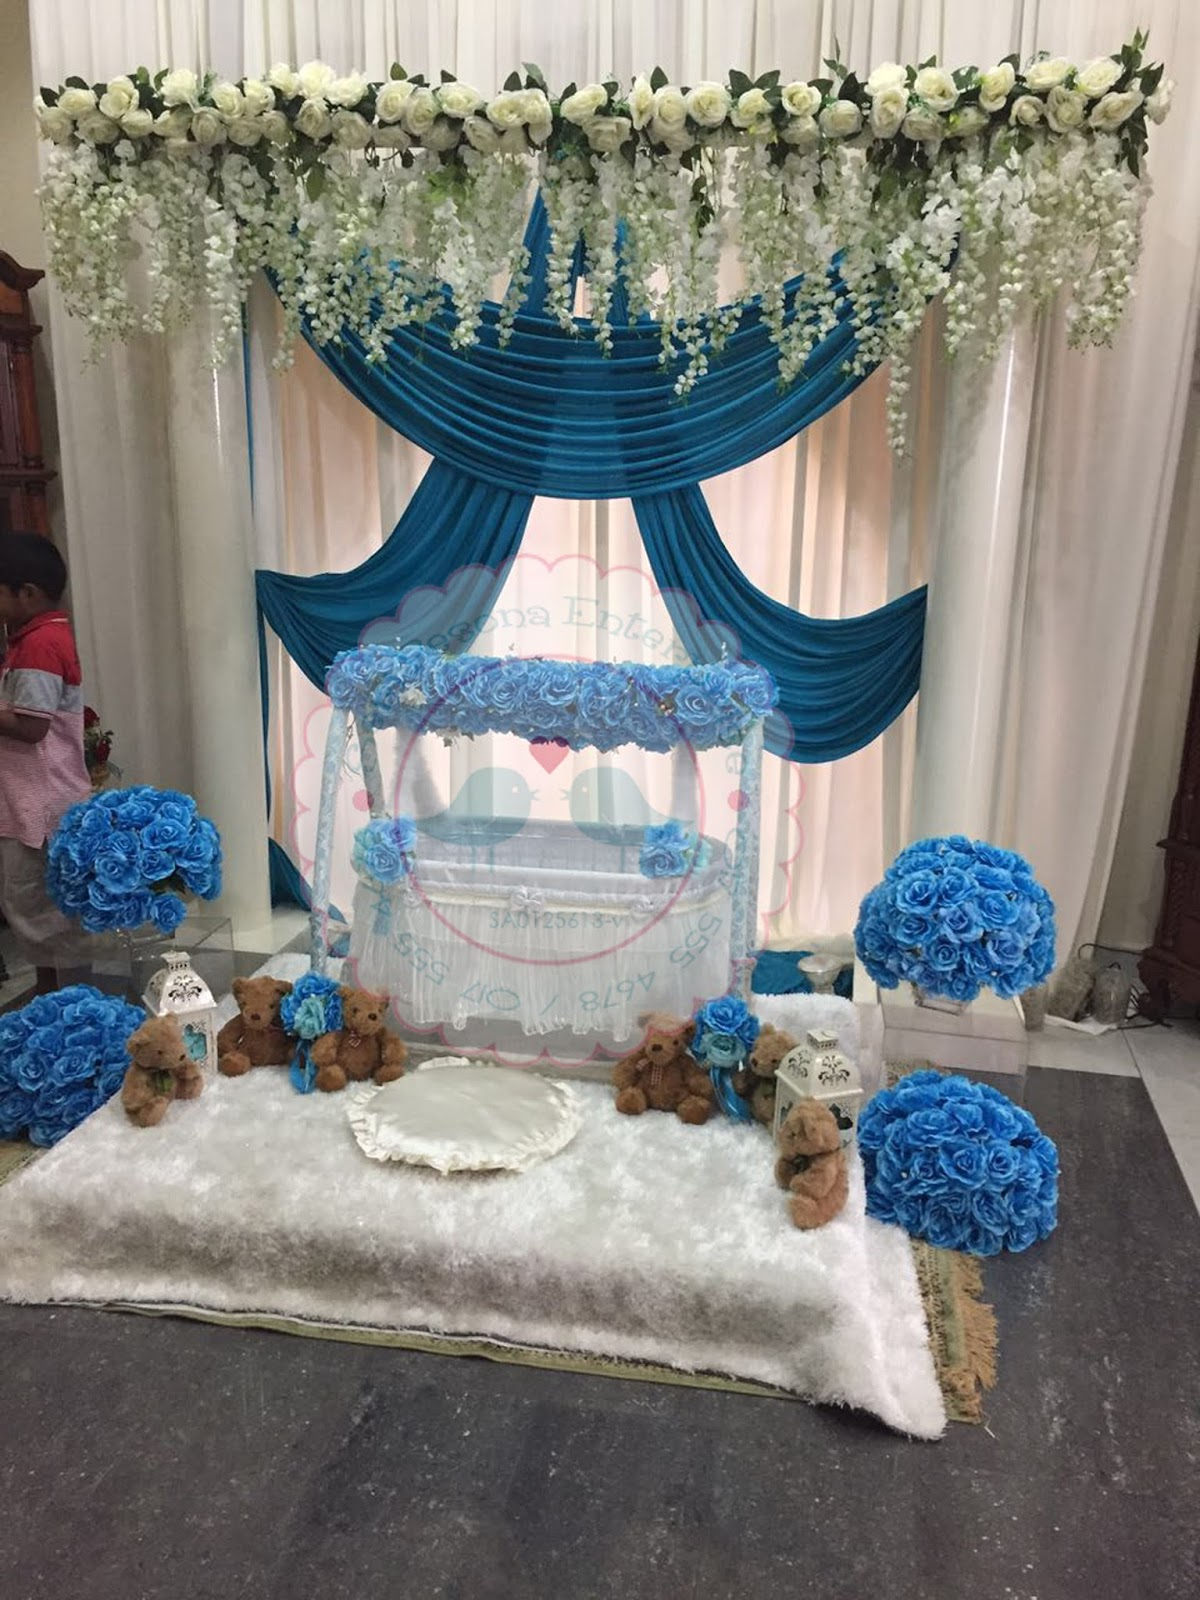 Buaian berendoi tema biru 10 april 2016 buaian for Baby name ceremony decoration